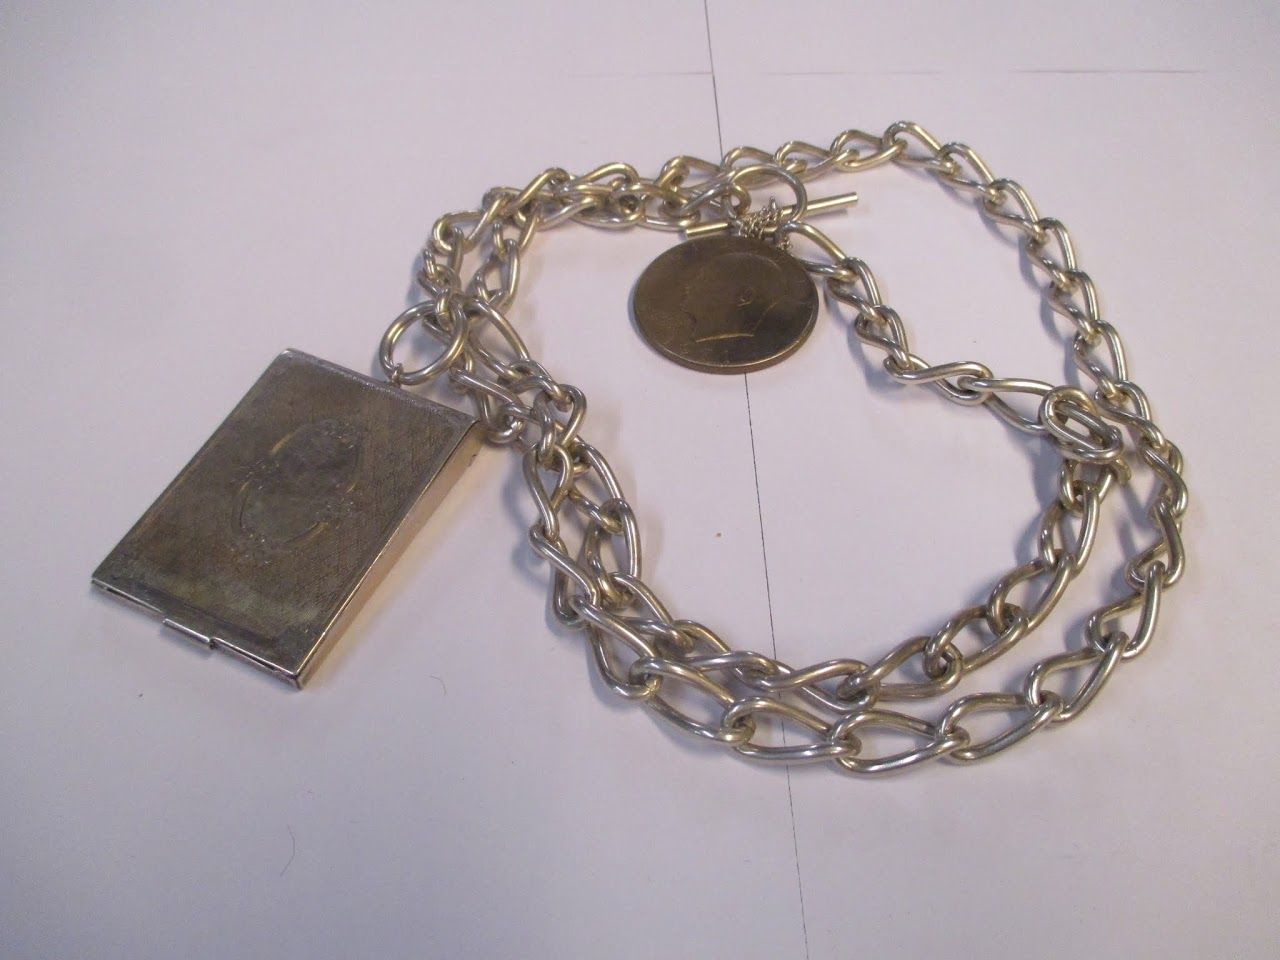 Sterling SIlver Necklace and Holder with Metal Coin